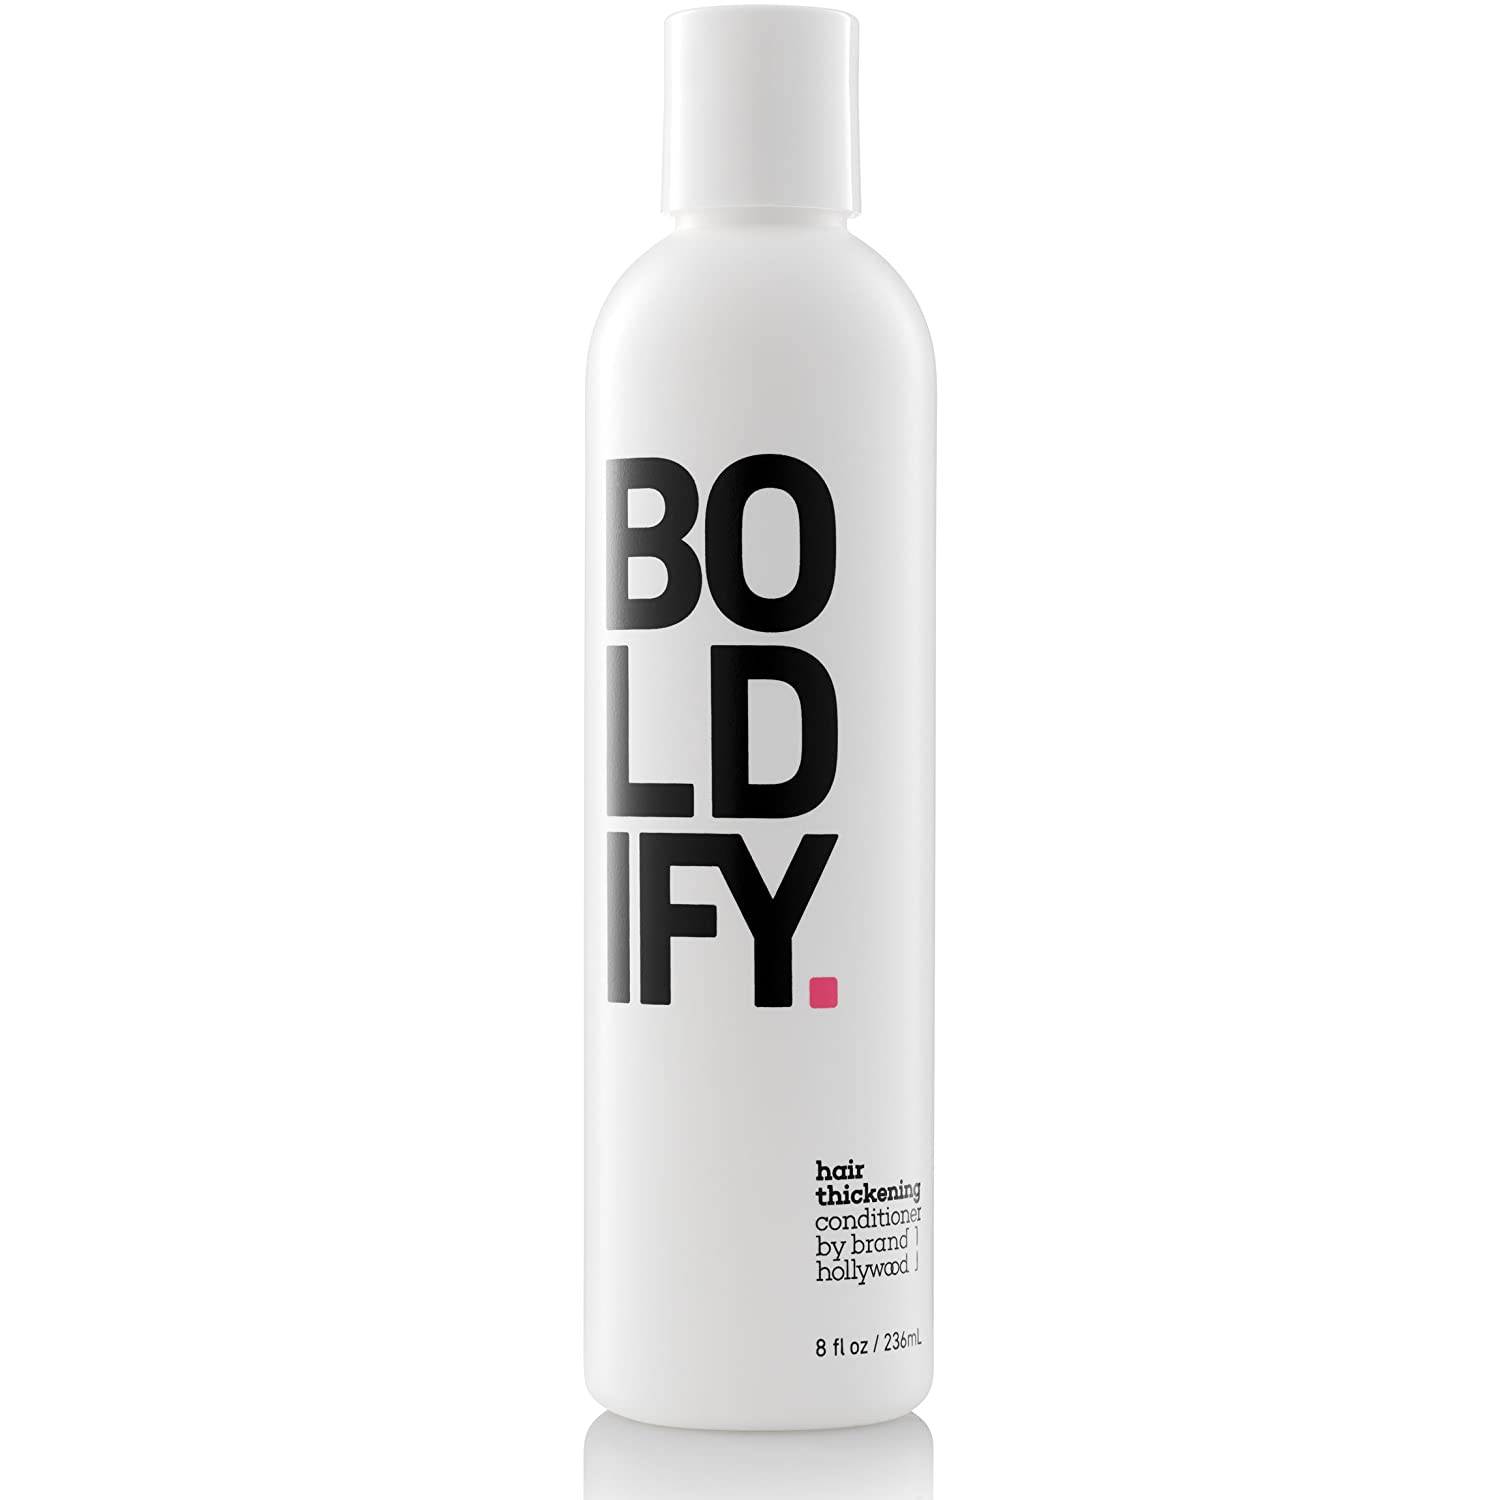 BOLDIFY Thickening Conditioner with BIOTIN - For Thicker, Stronger and Fuller Hair with Every Use - Color Safe and Vitamin Infused for Volumizing (8 oz)